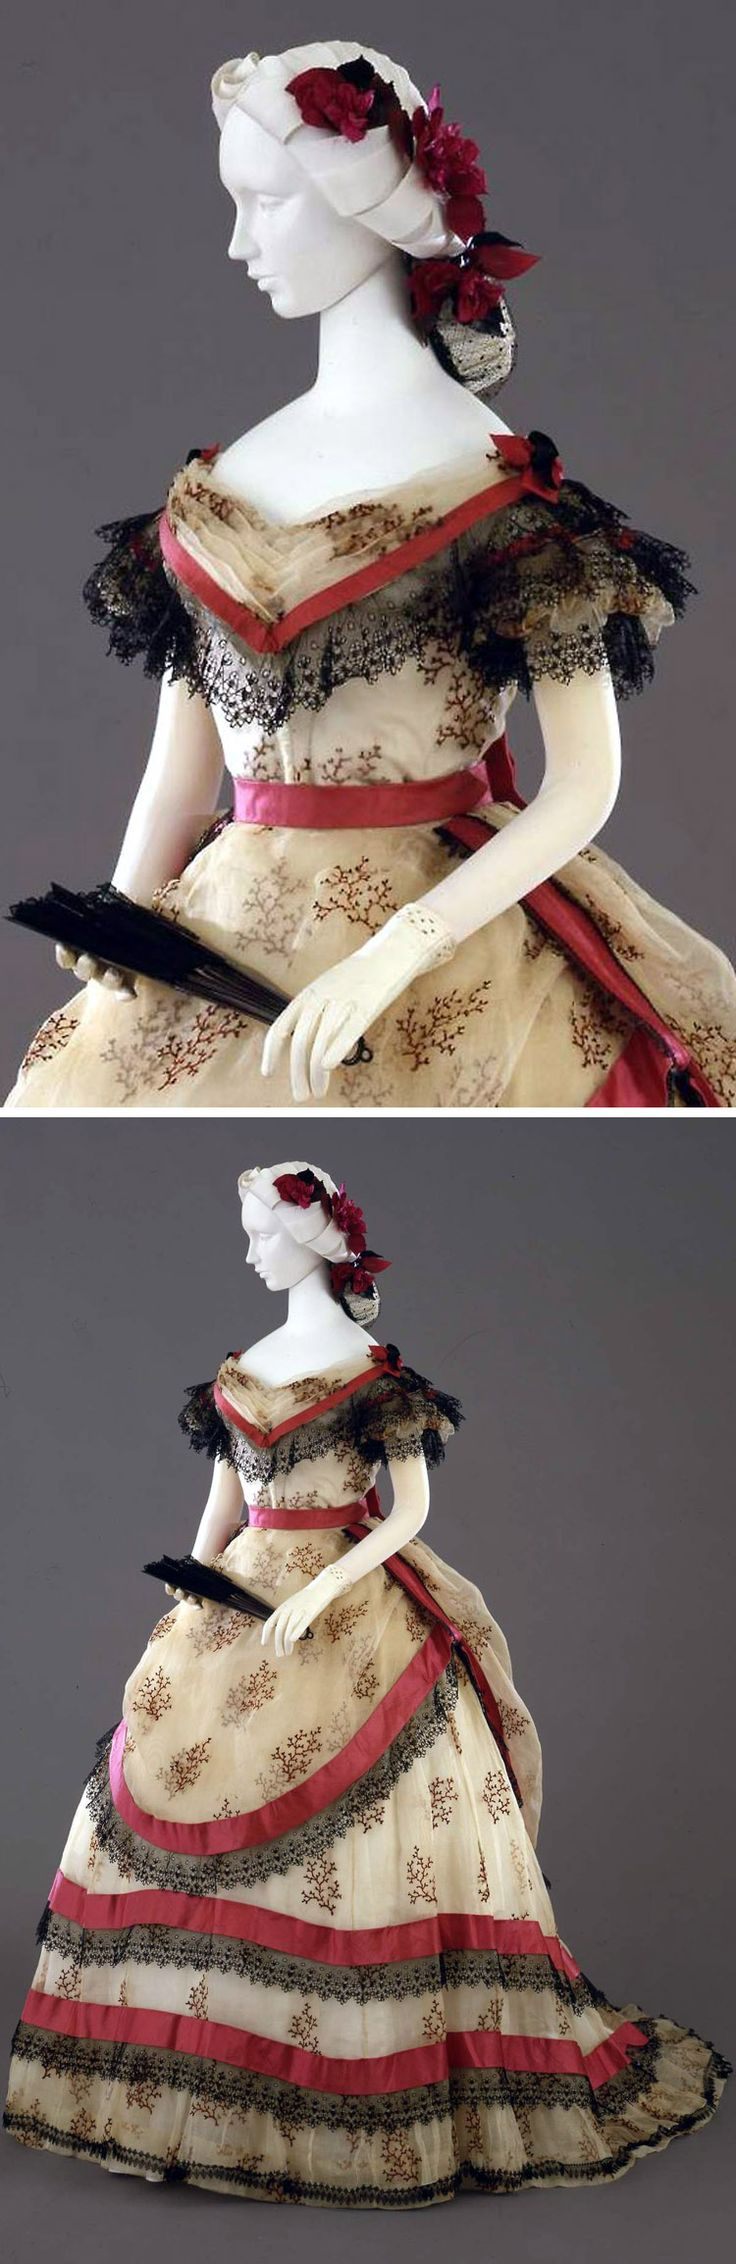 Ball gown, Italian (?), ca. 1869. Ivory-colored linen, with printed coral branches, bordered in red satin and black lace. Photo: Antonio Quattrone. Collection Galleria del Costume di Palazzo Pitti